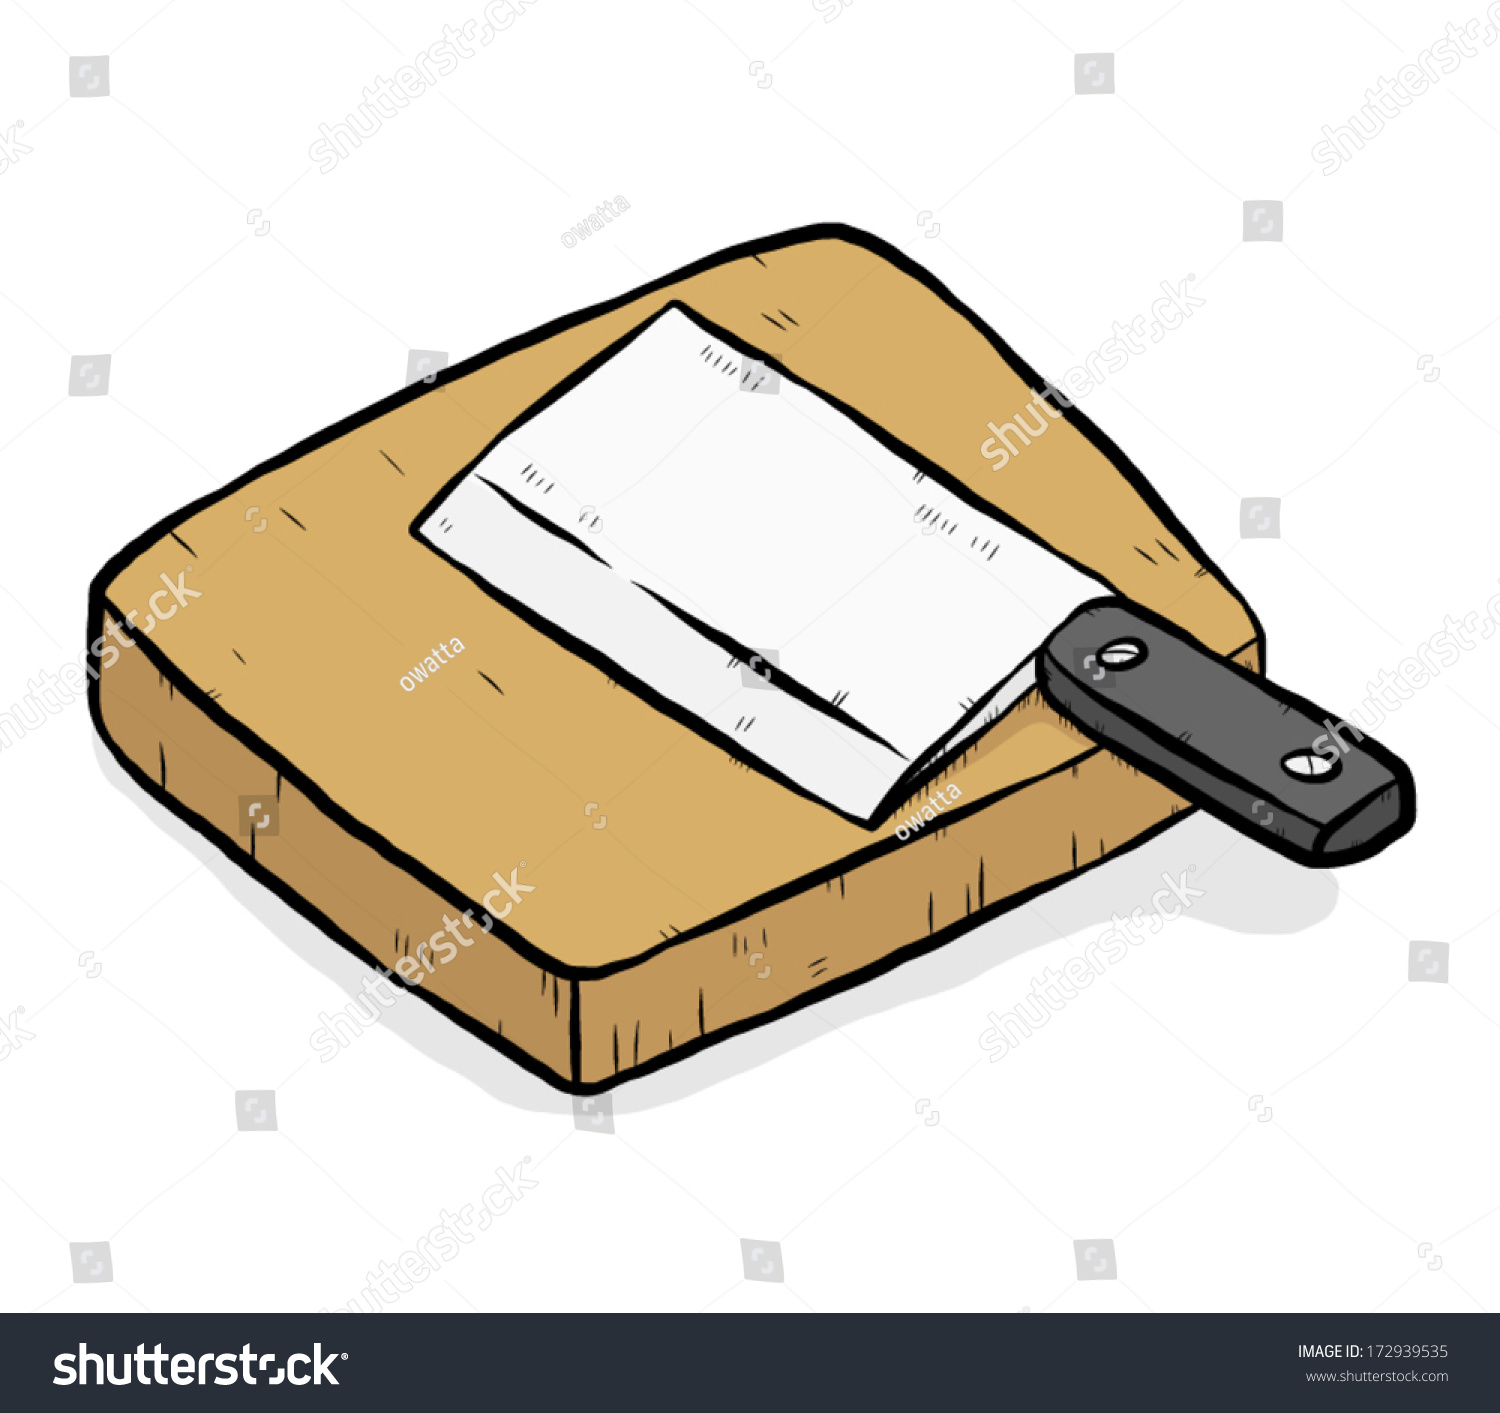 Kitchen Knife Chopping Block Cartoon Vector Stock Vector ...